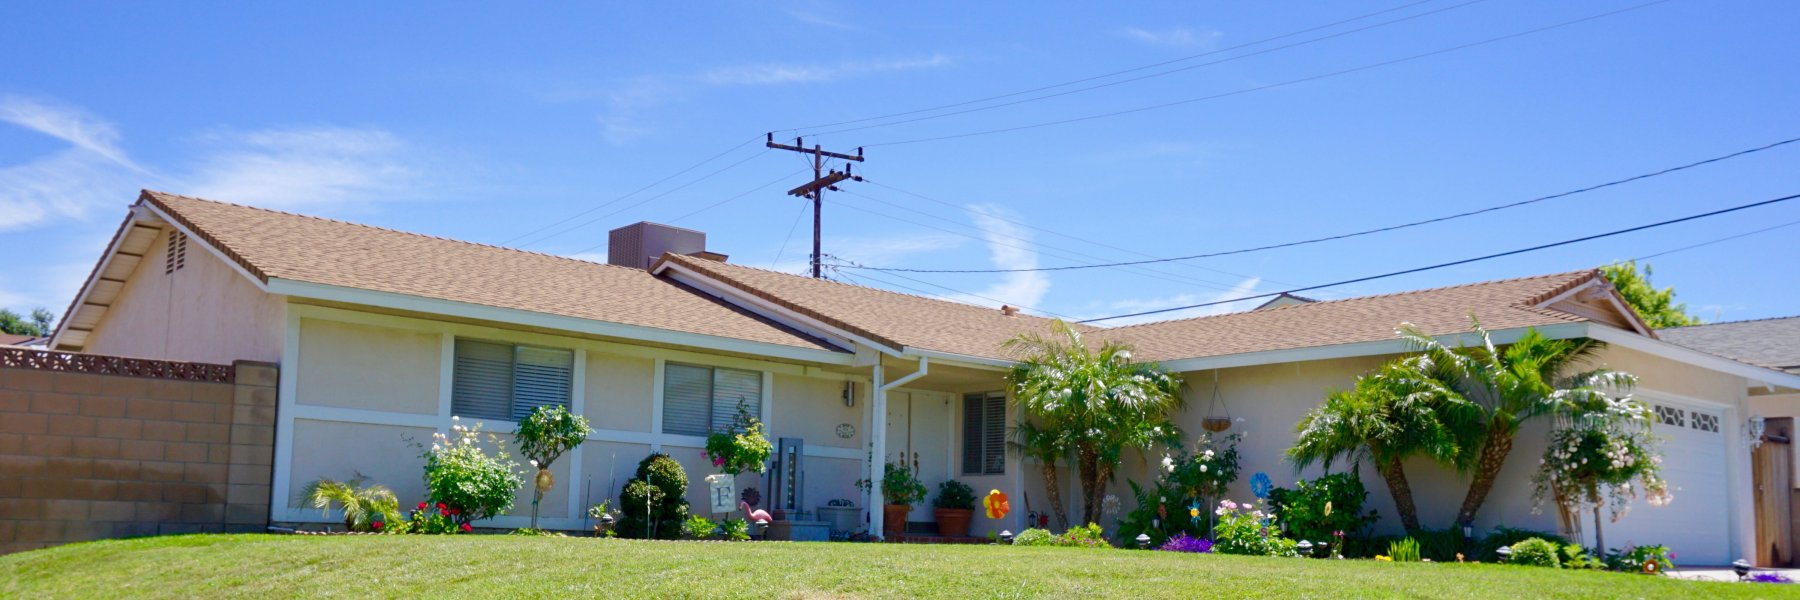 Hollow Hills is a community of homes in Simi Valley California